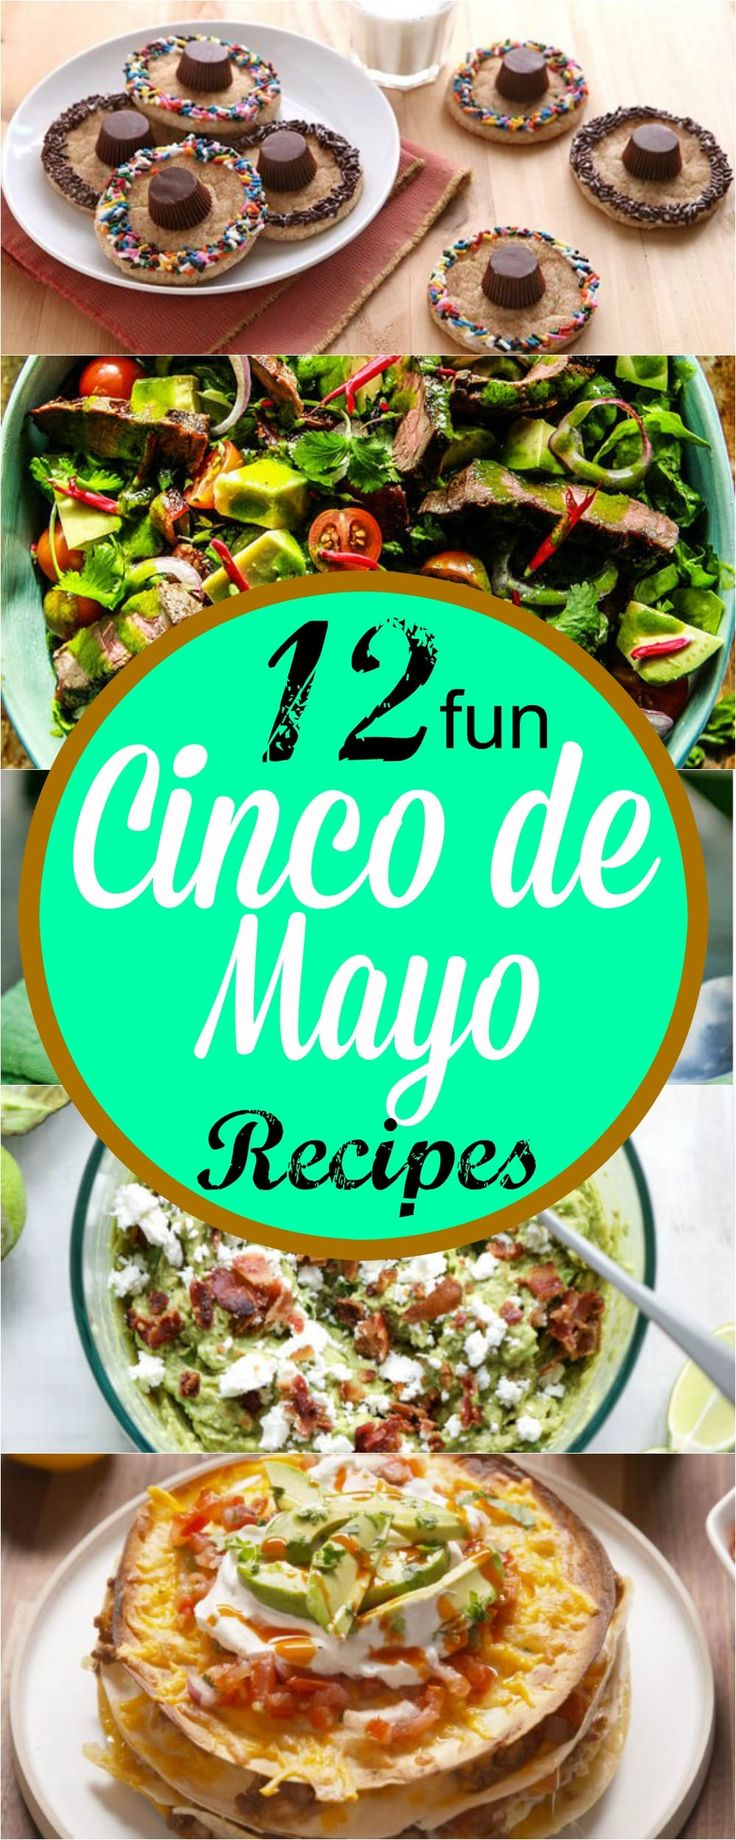 Looking for some good recipes for Cinco de Mayo? Check out these tasty dishes!!